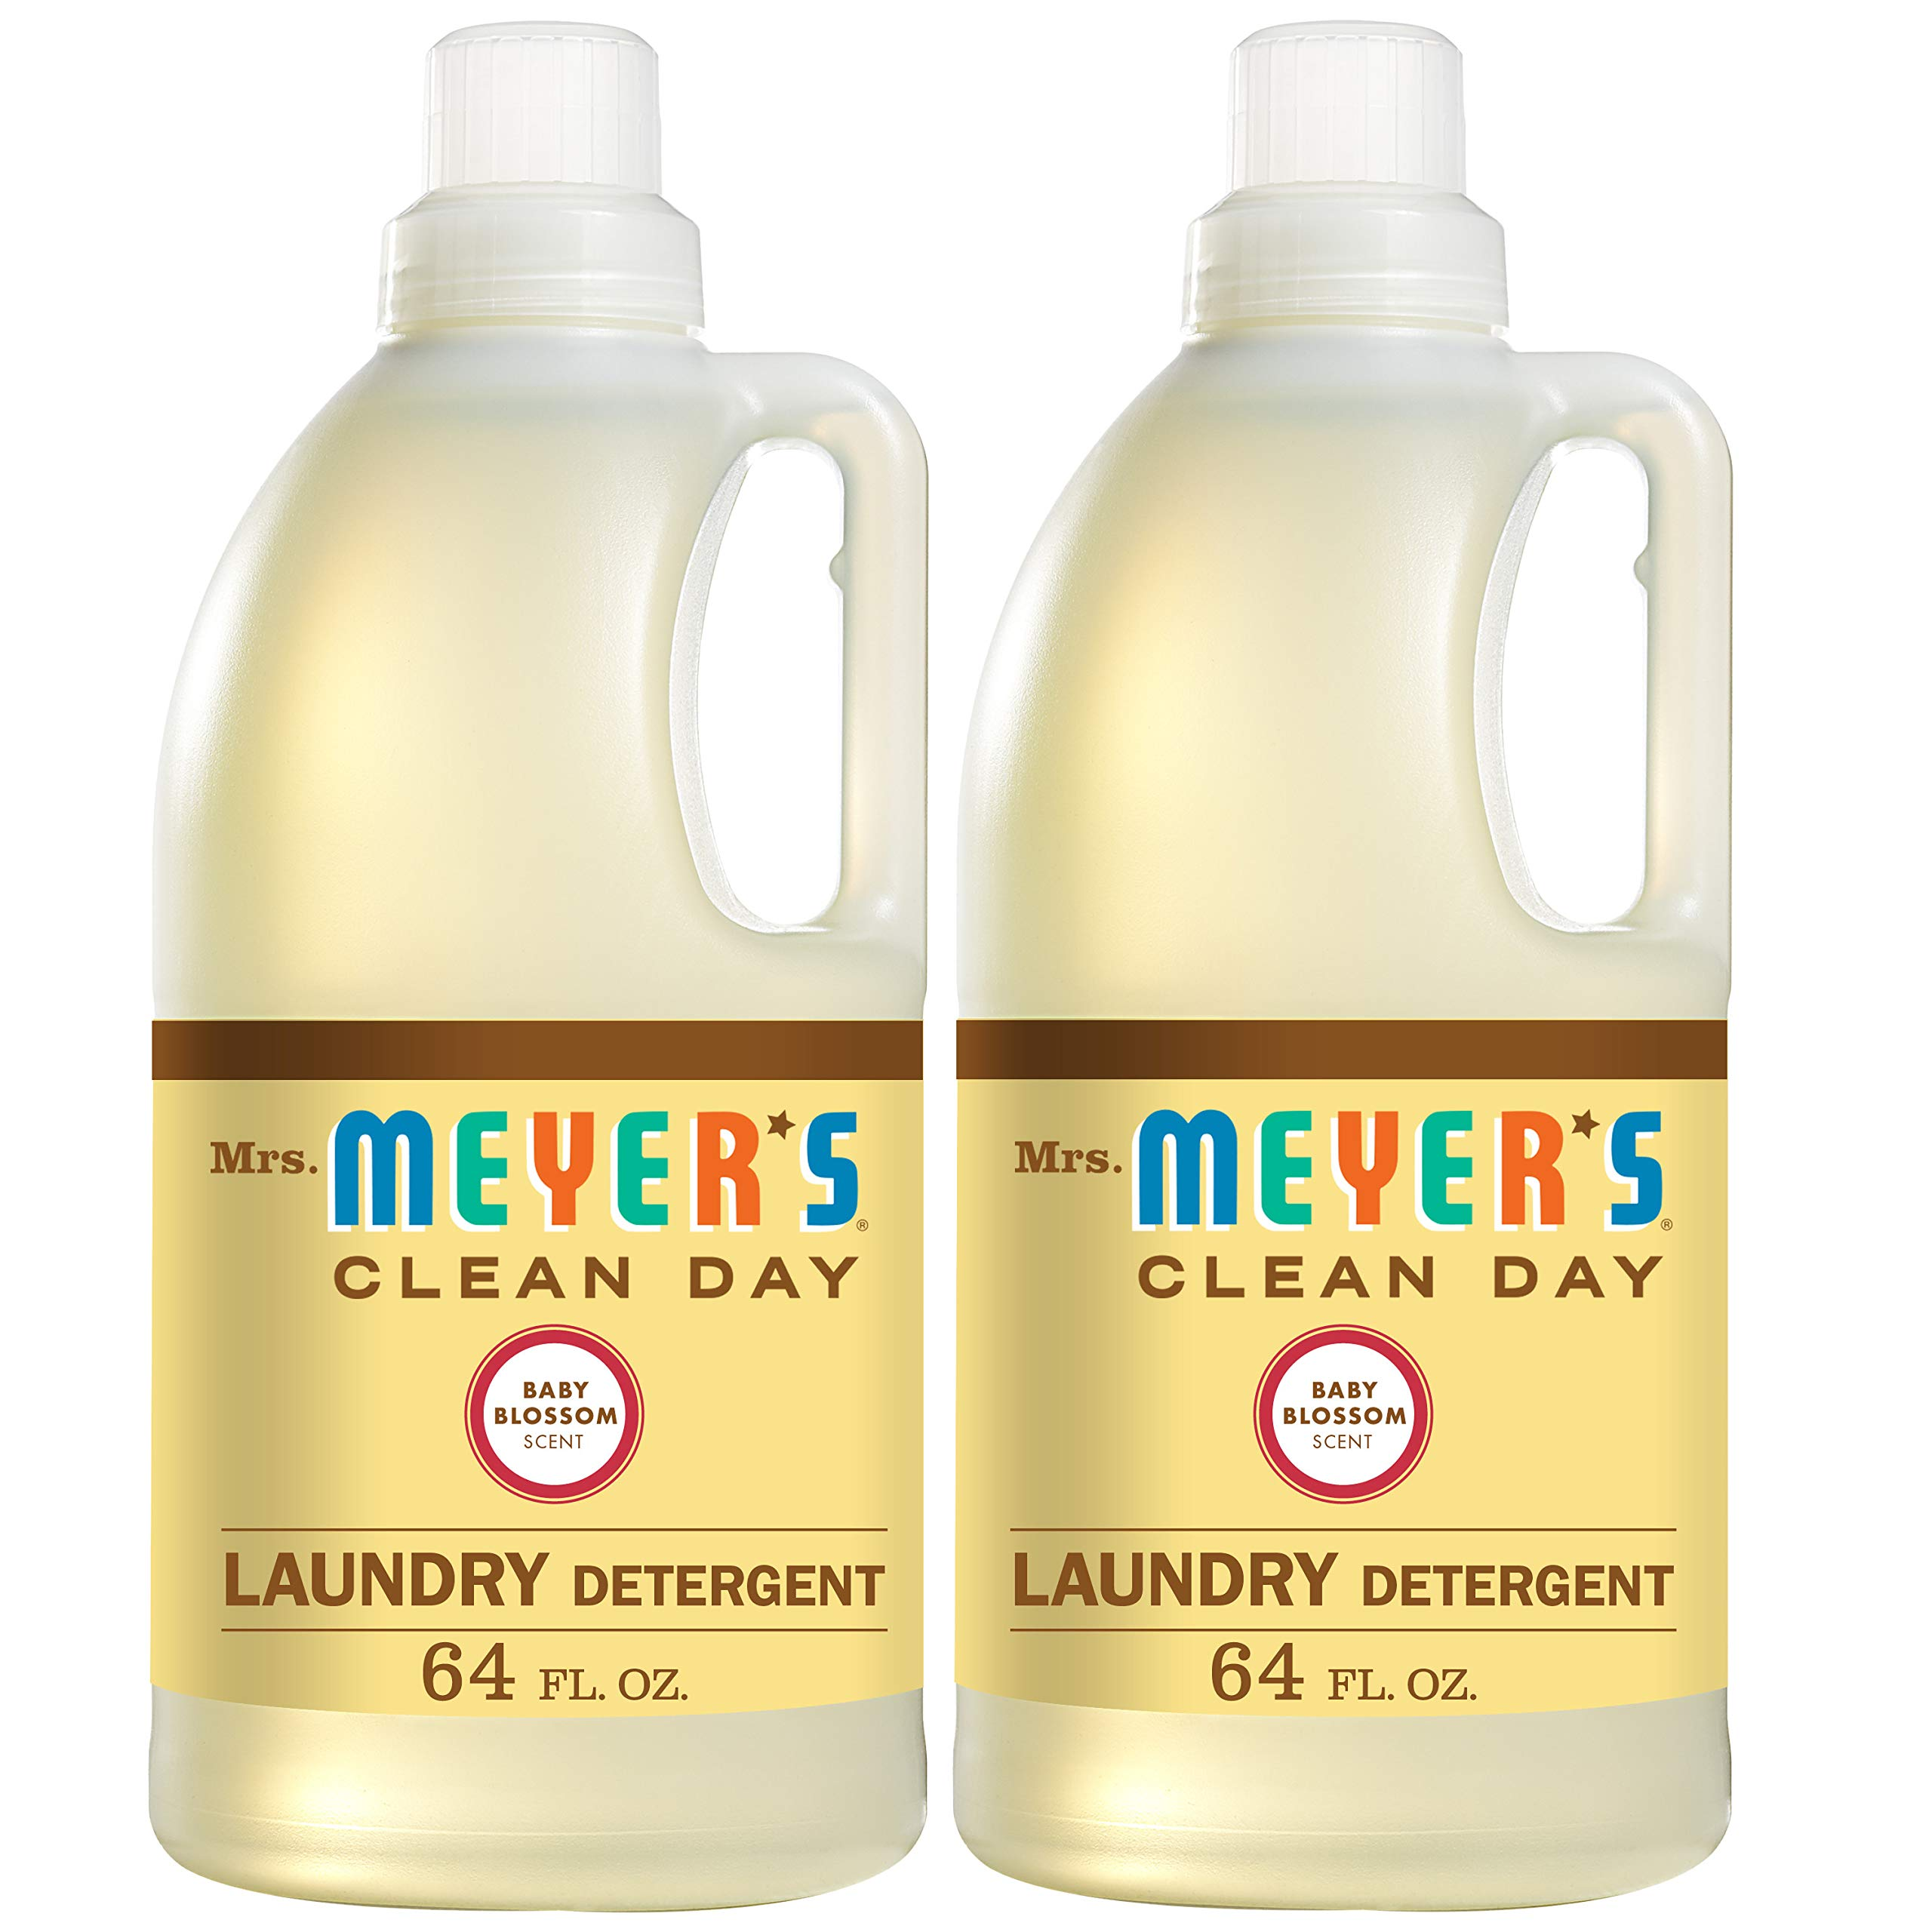 Mrs. Meyer's Laundry Detergent, Baby Blossom, 64 fl oz (2 ct) by Mrs. Meyer's Clean Day (Image #1)